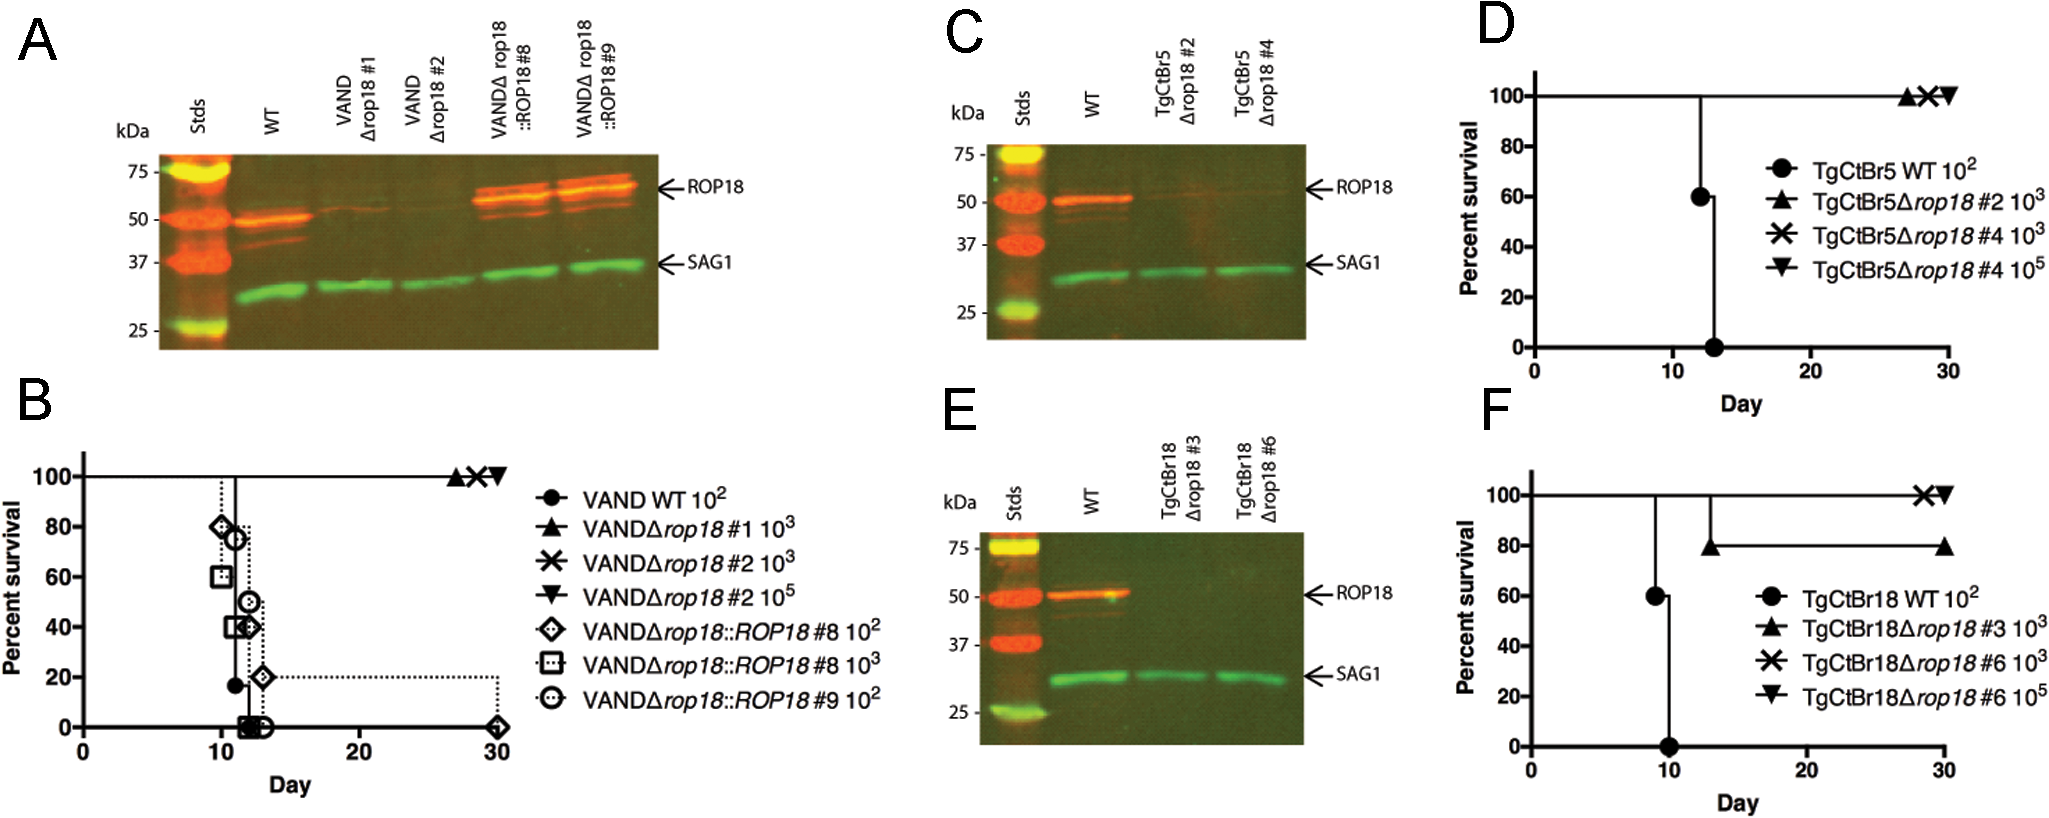 ROP18 is essential for virulence in South American strains VAND, TgCtBr5, and TgCtBr18.